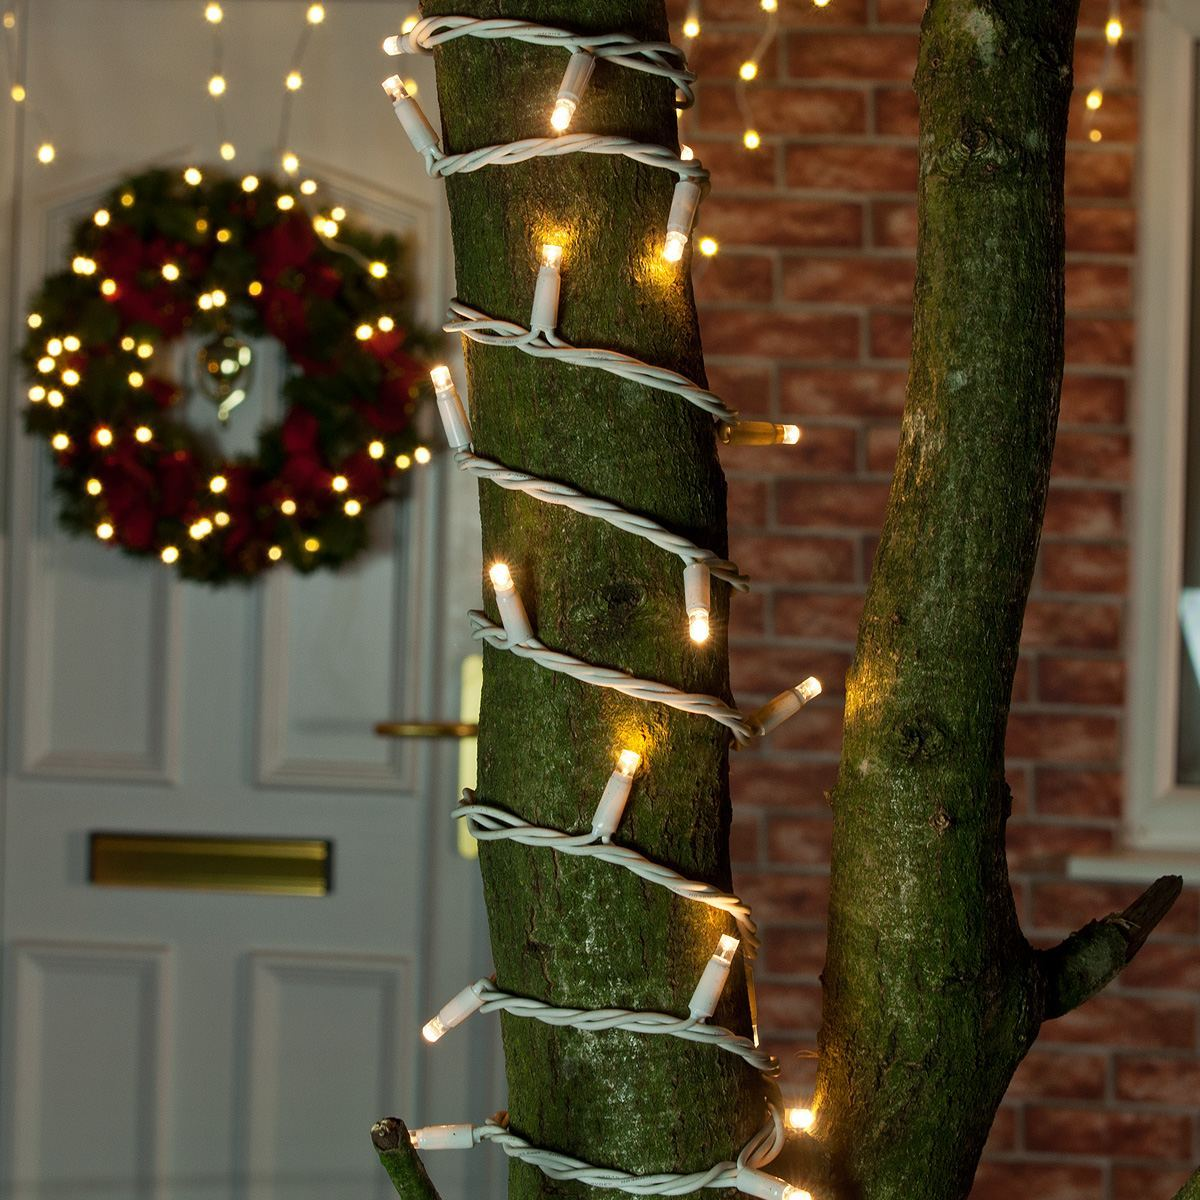 Connectable String Lights Outdoor : Outdoor LED Flash Bulb String Lights, Connectable, White Rubber Cable